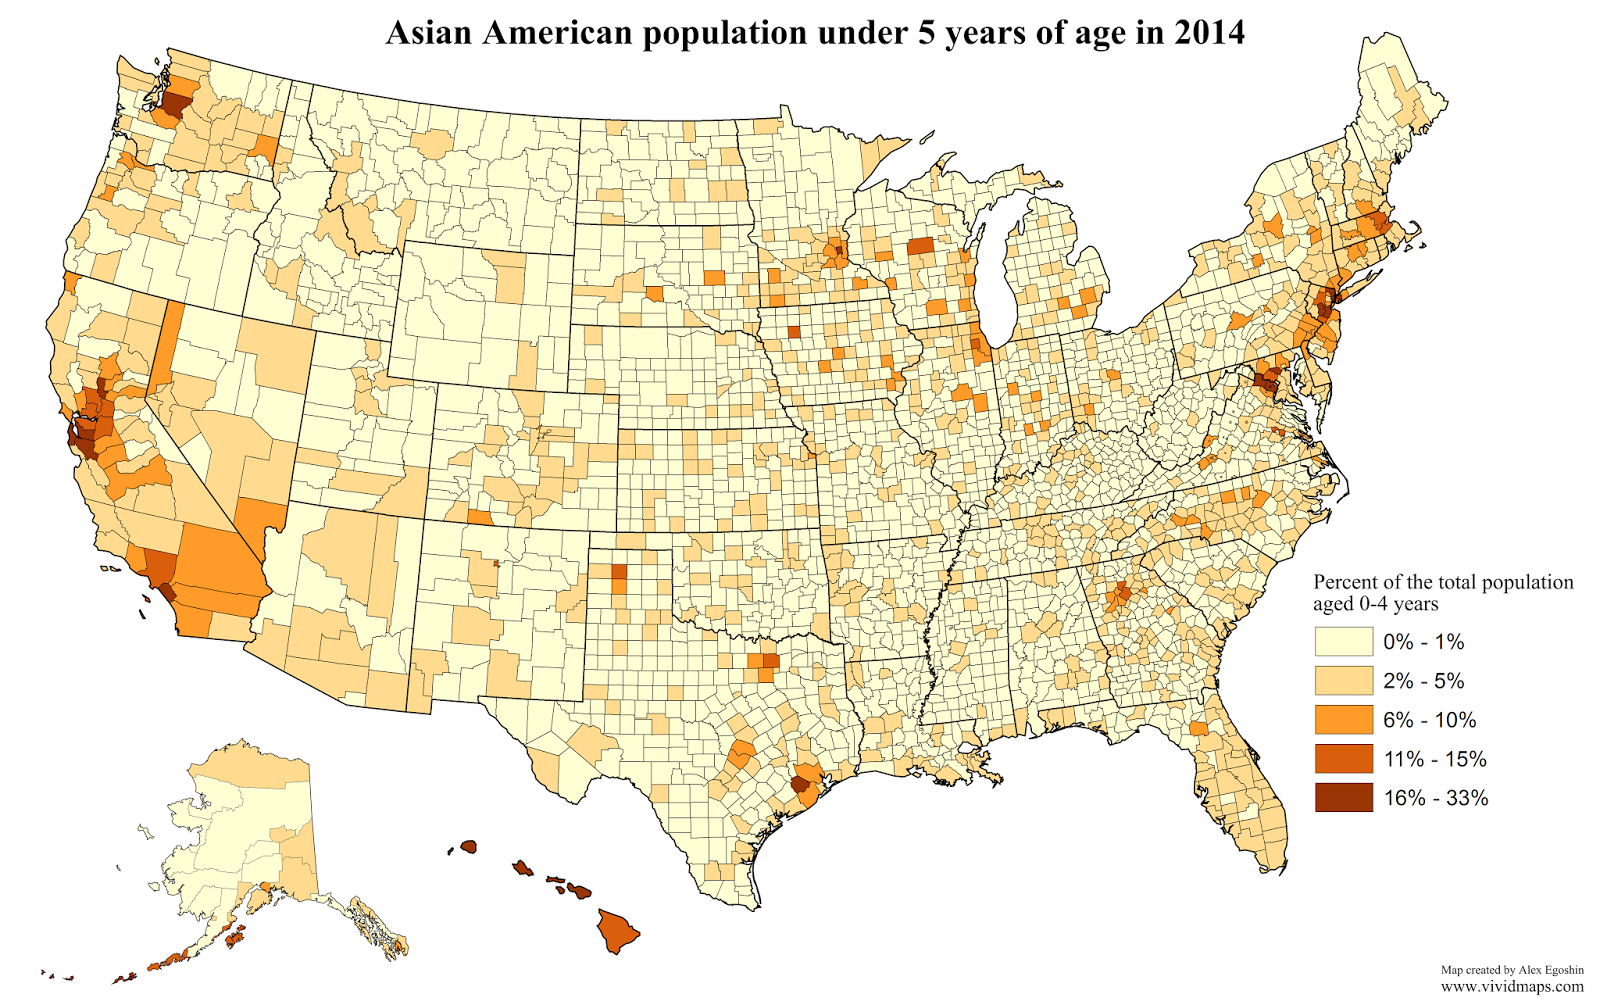 Asian American population under 5 years of age in 2014